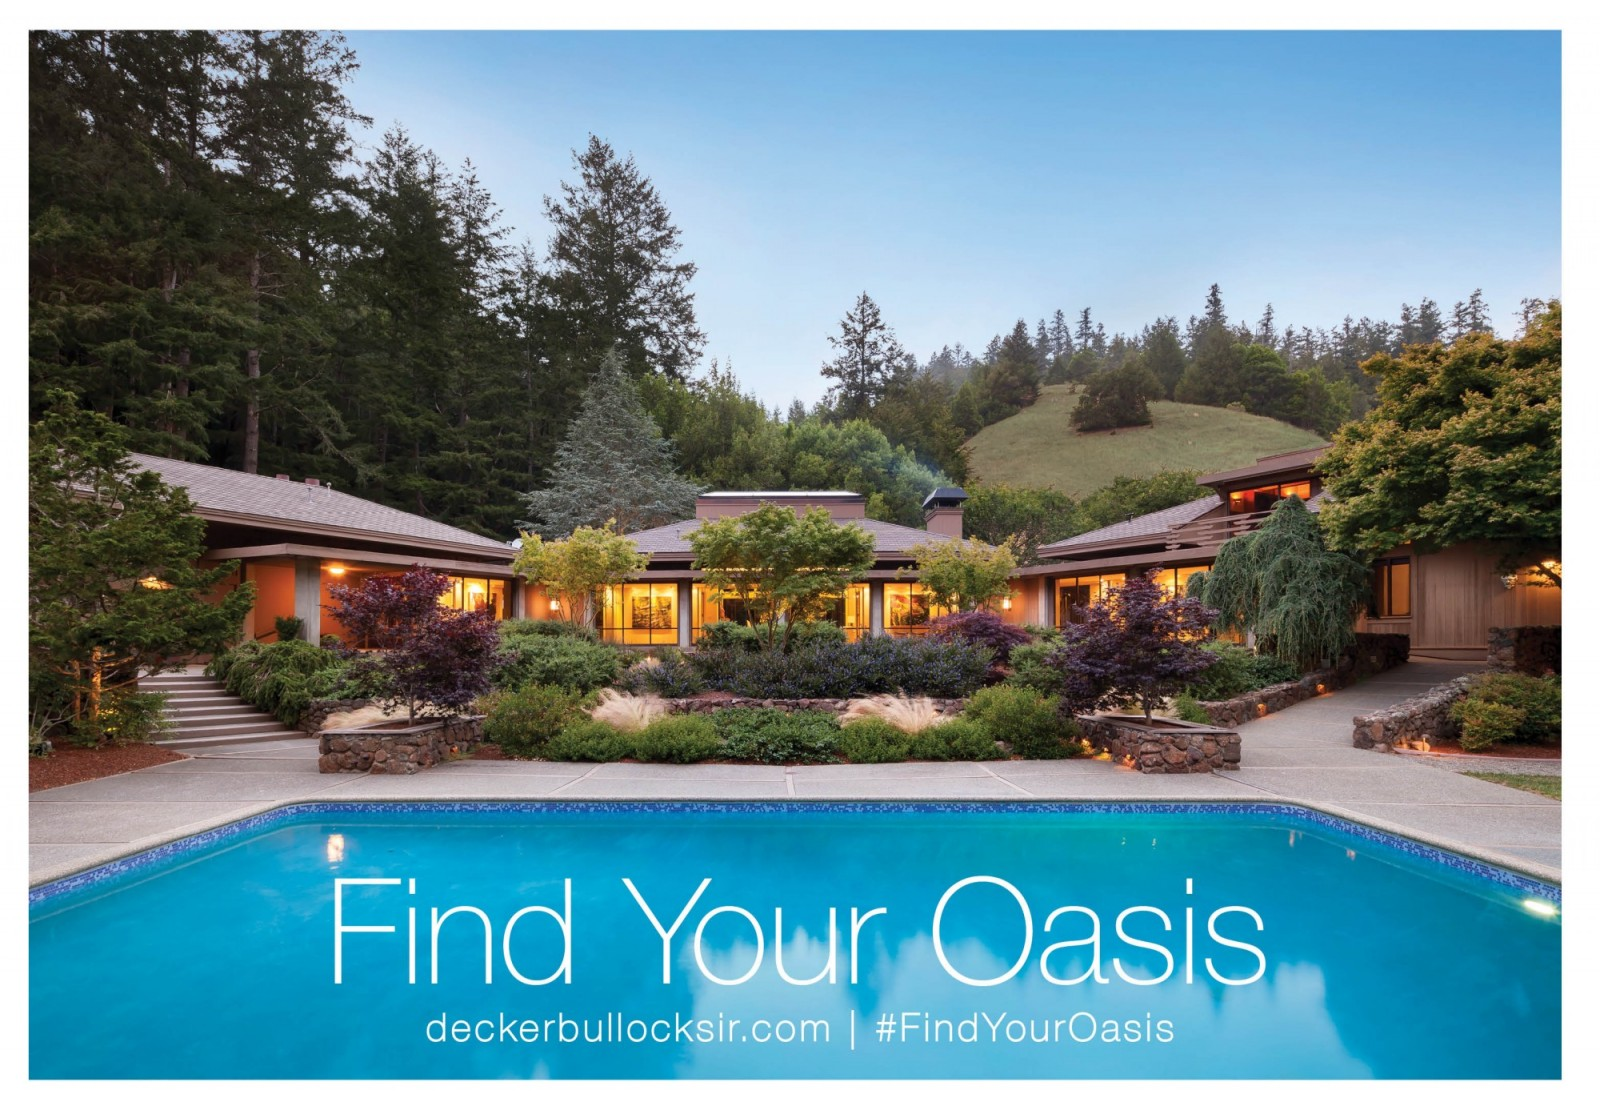 Find your oasis